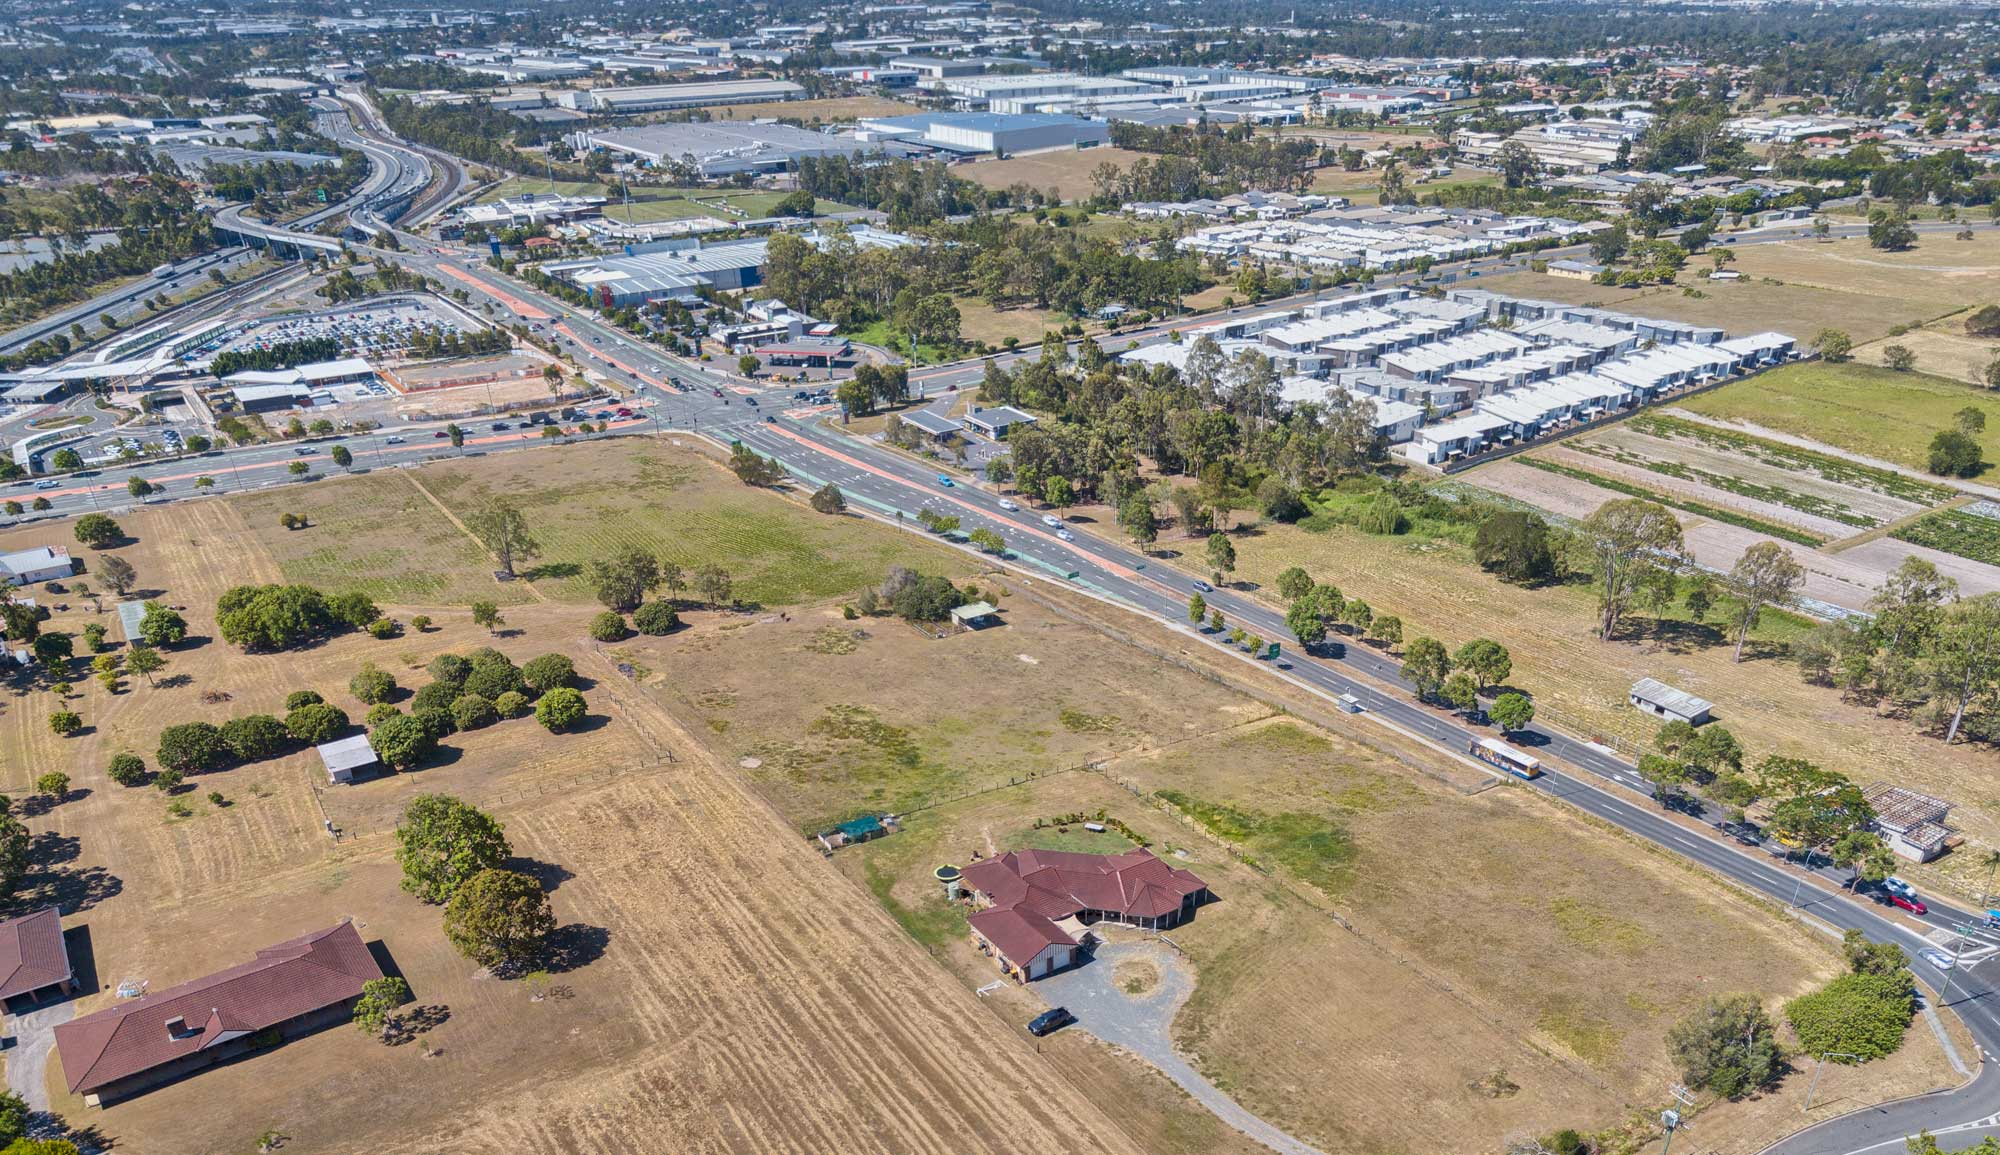 Drone photography of Government Rd, Richlands from 100m